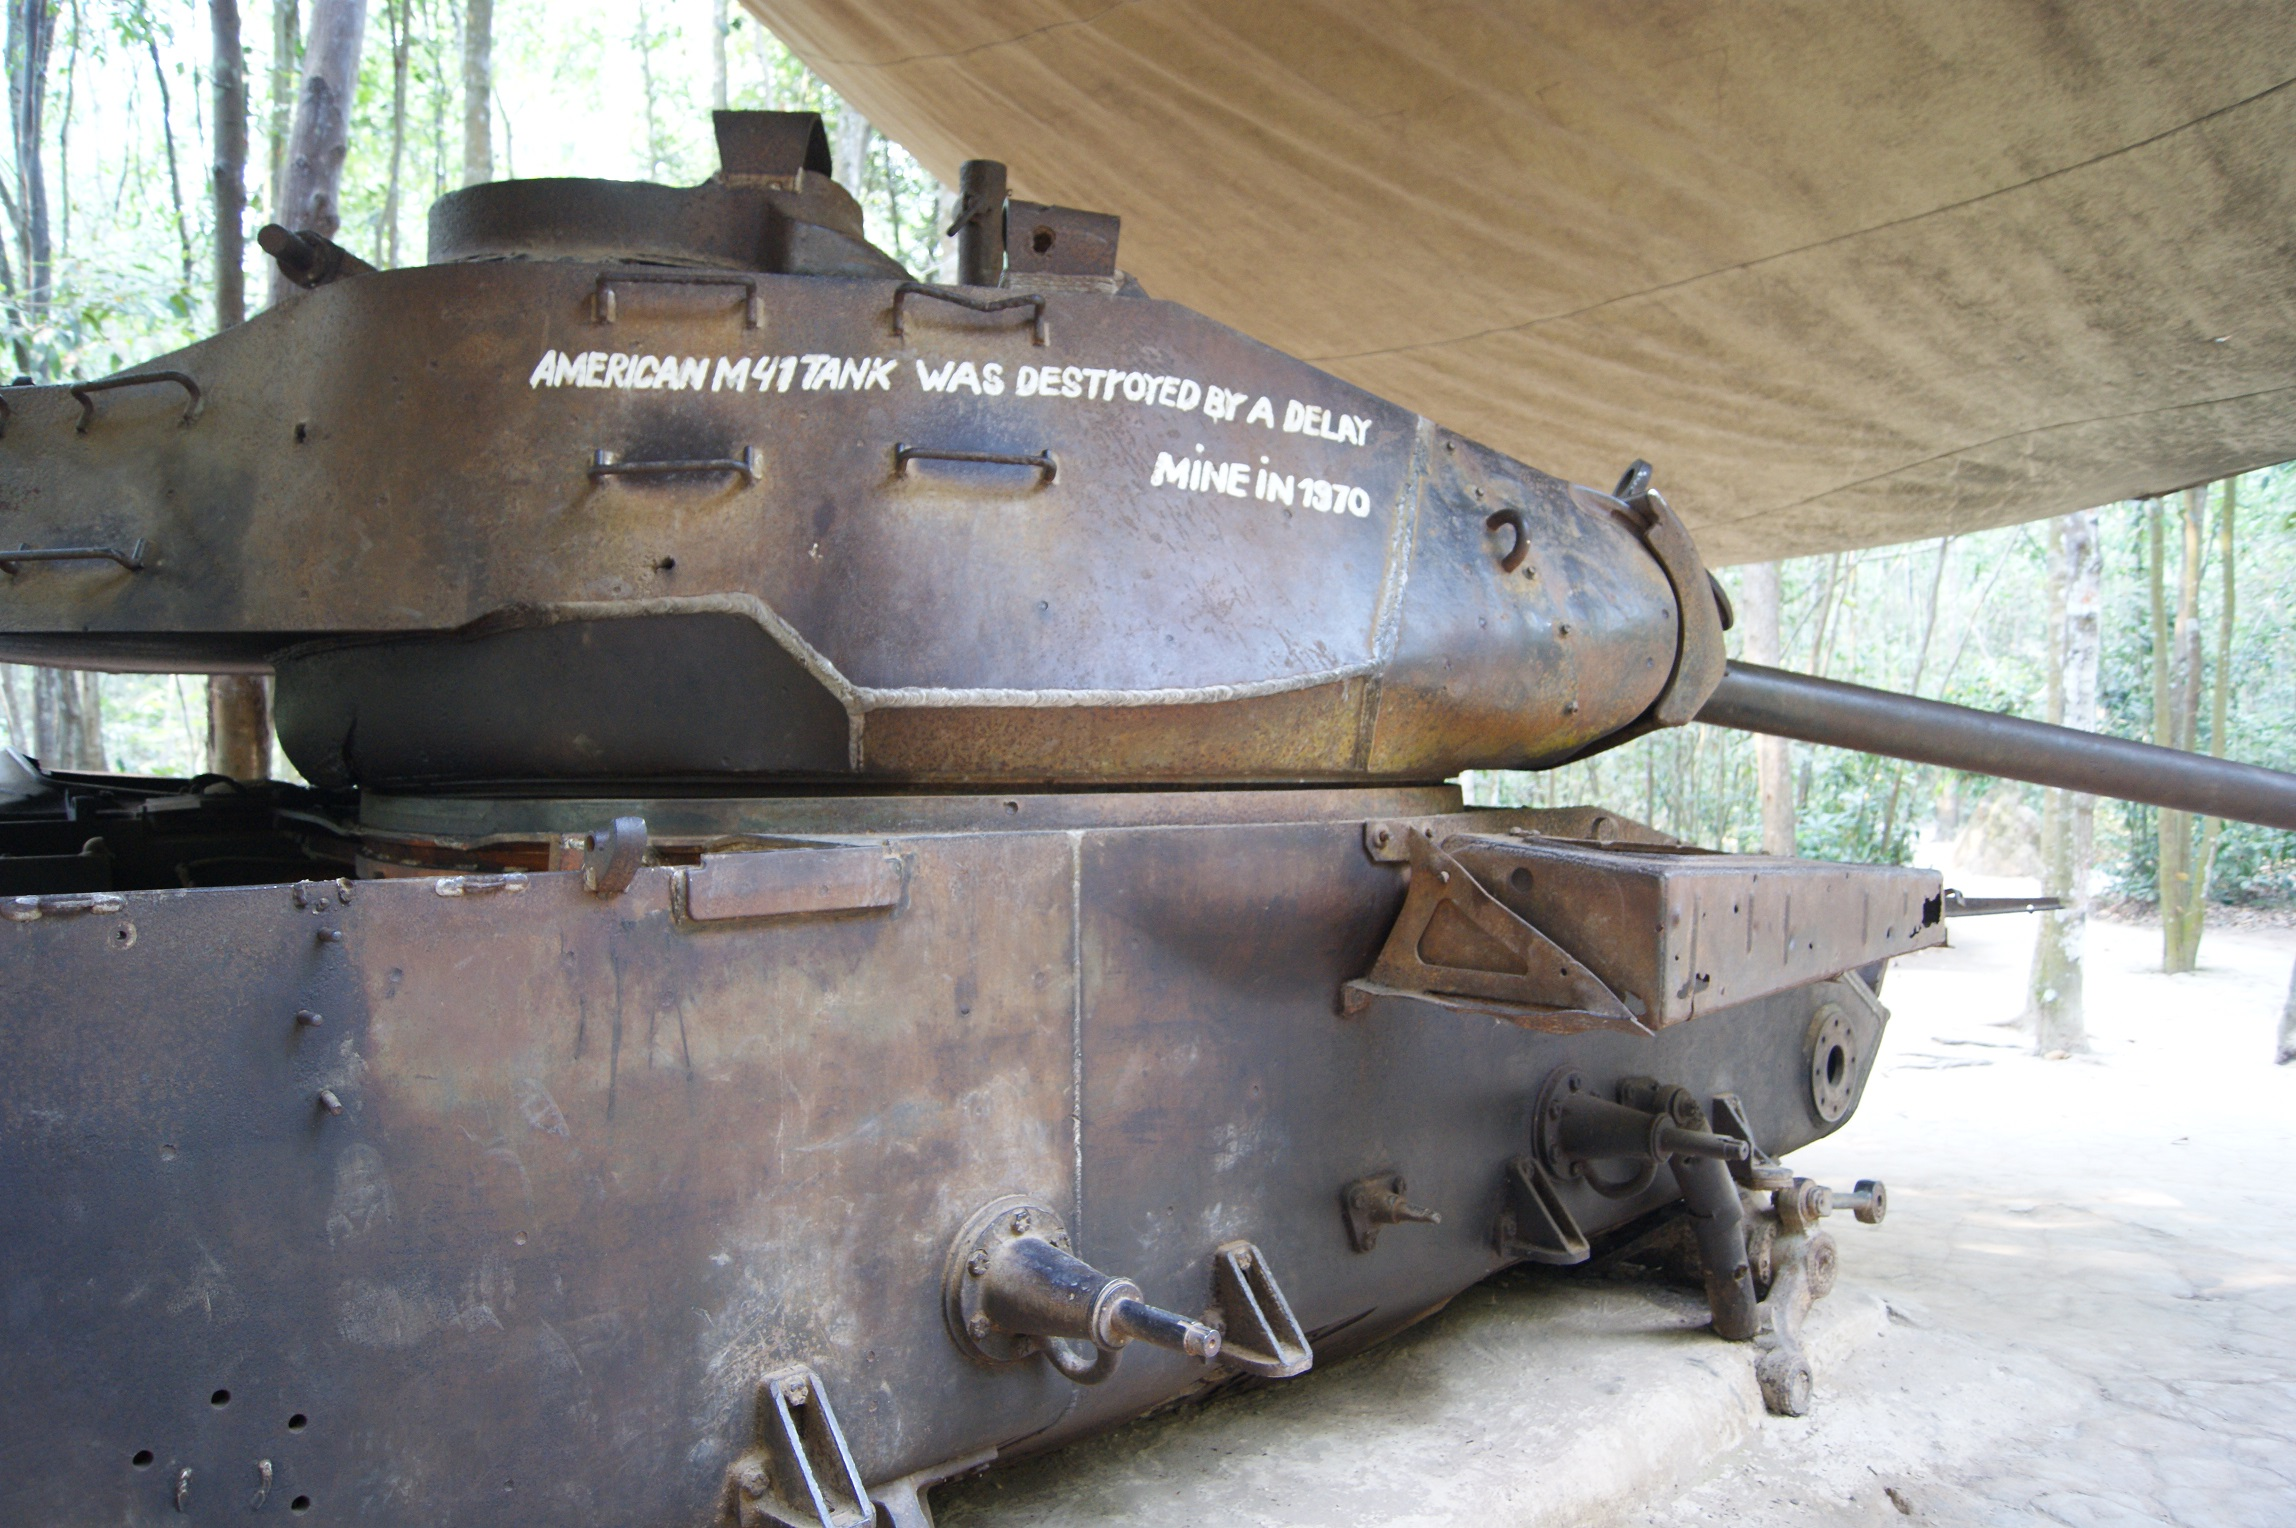 American tank destroyed in the war